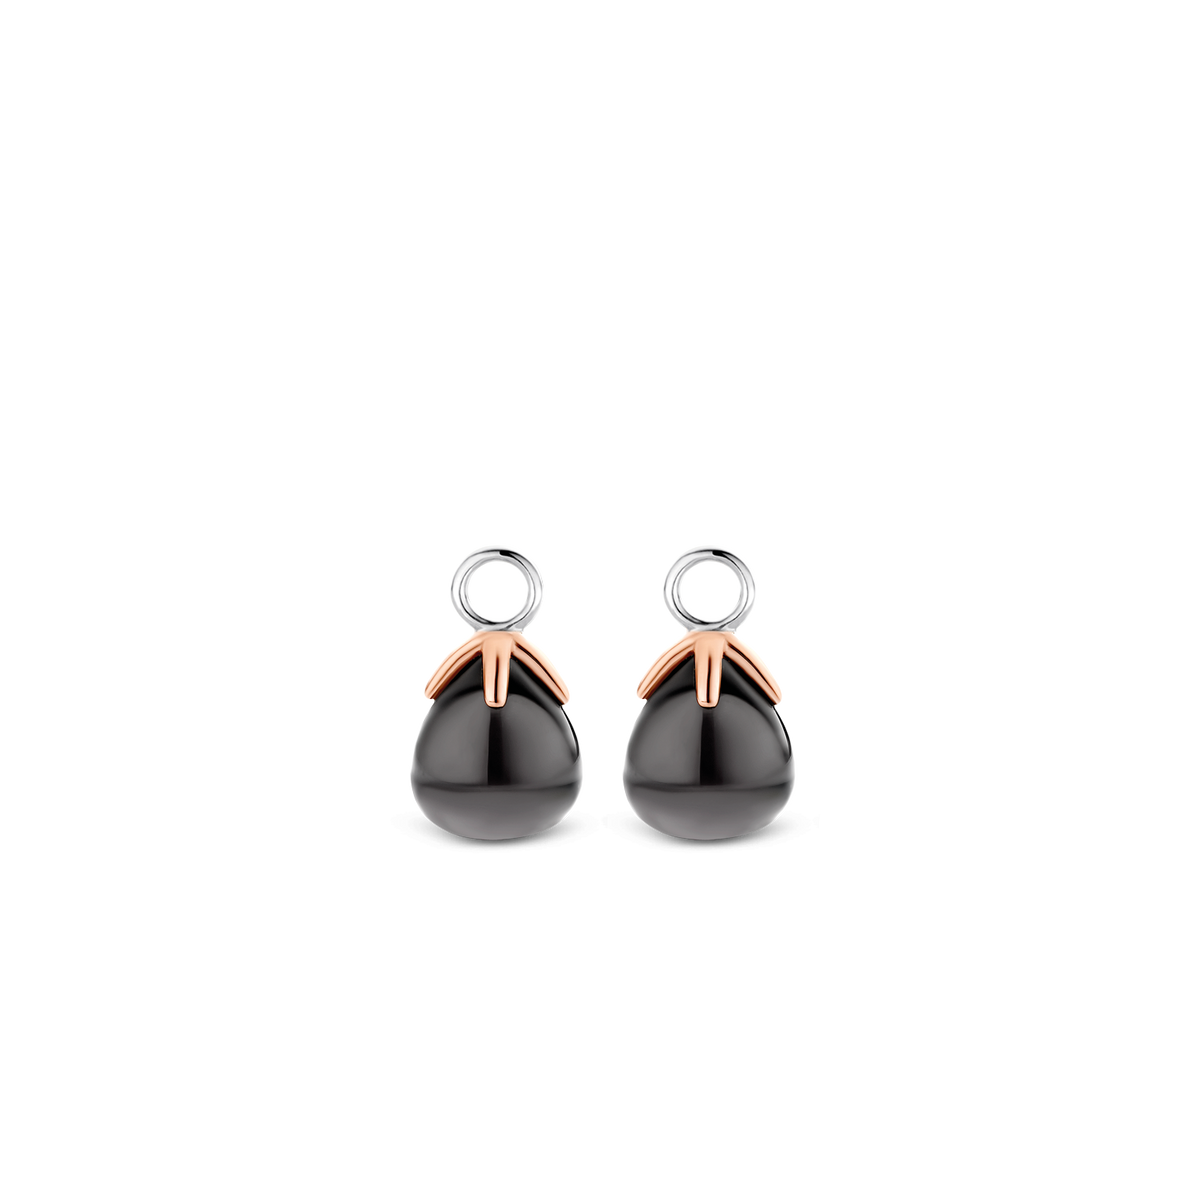 TI SENTO - Milano Ear Charms 9191GB